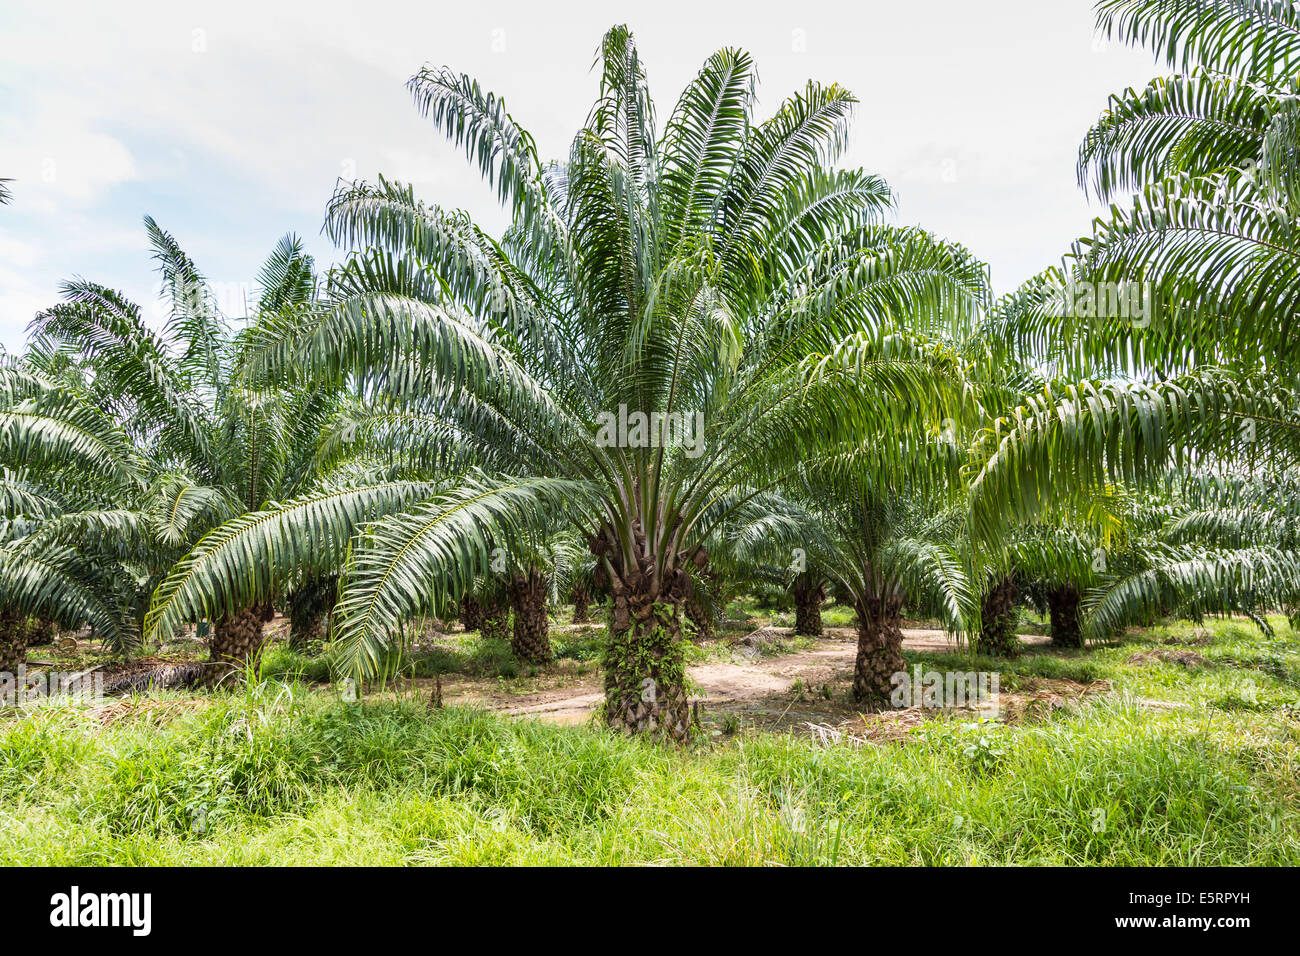 Oil palm trees (Elaeis guineensis) in a plantation ...